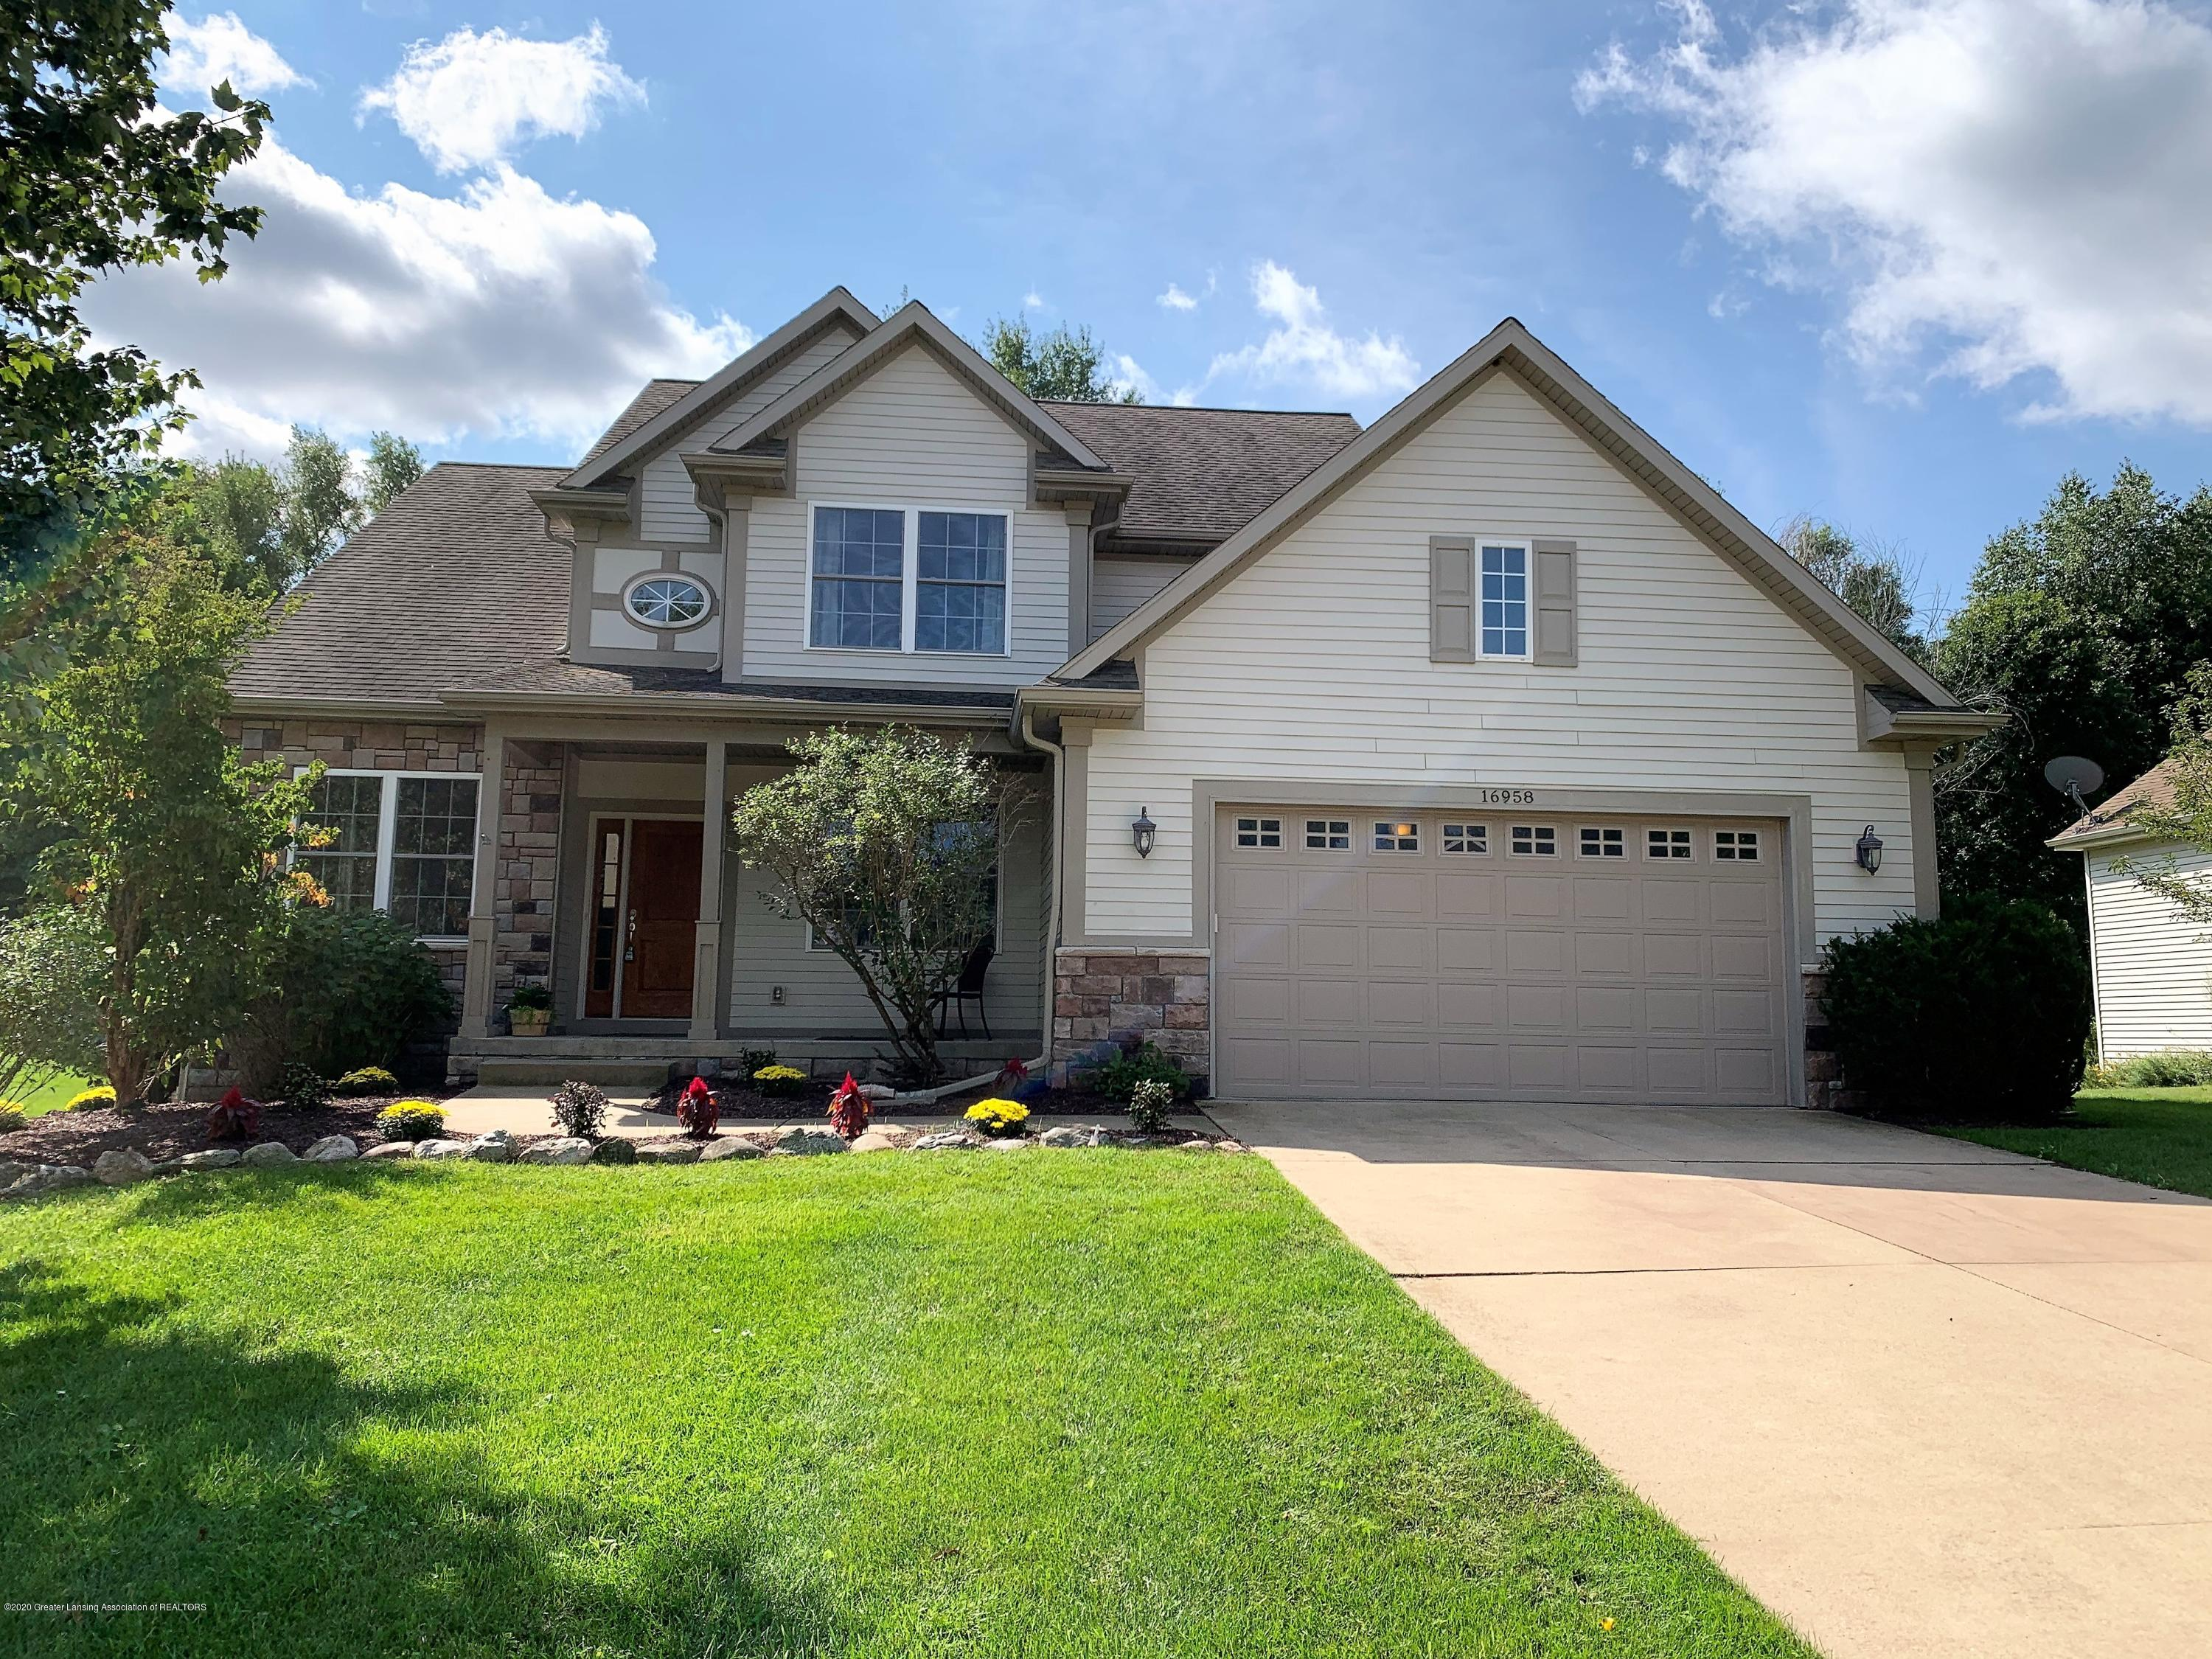 16958 Broadview Dr - IMG_4366 - 2